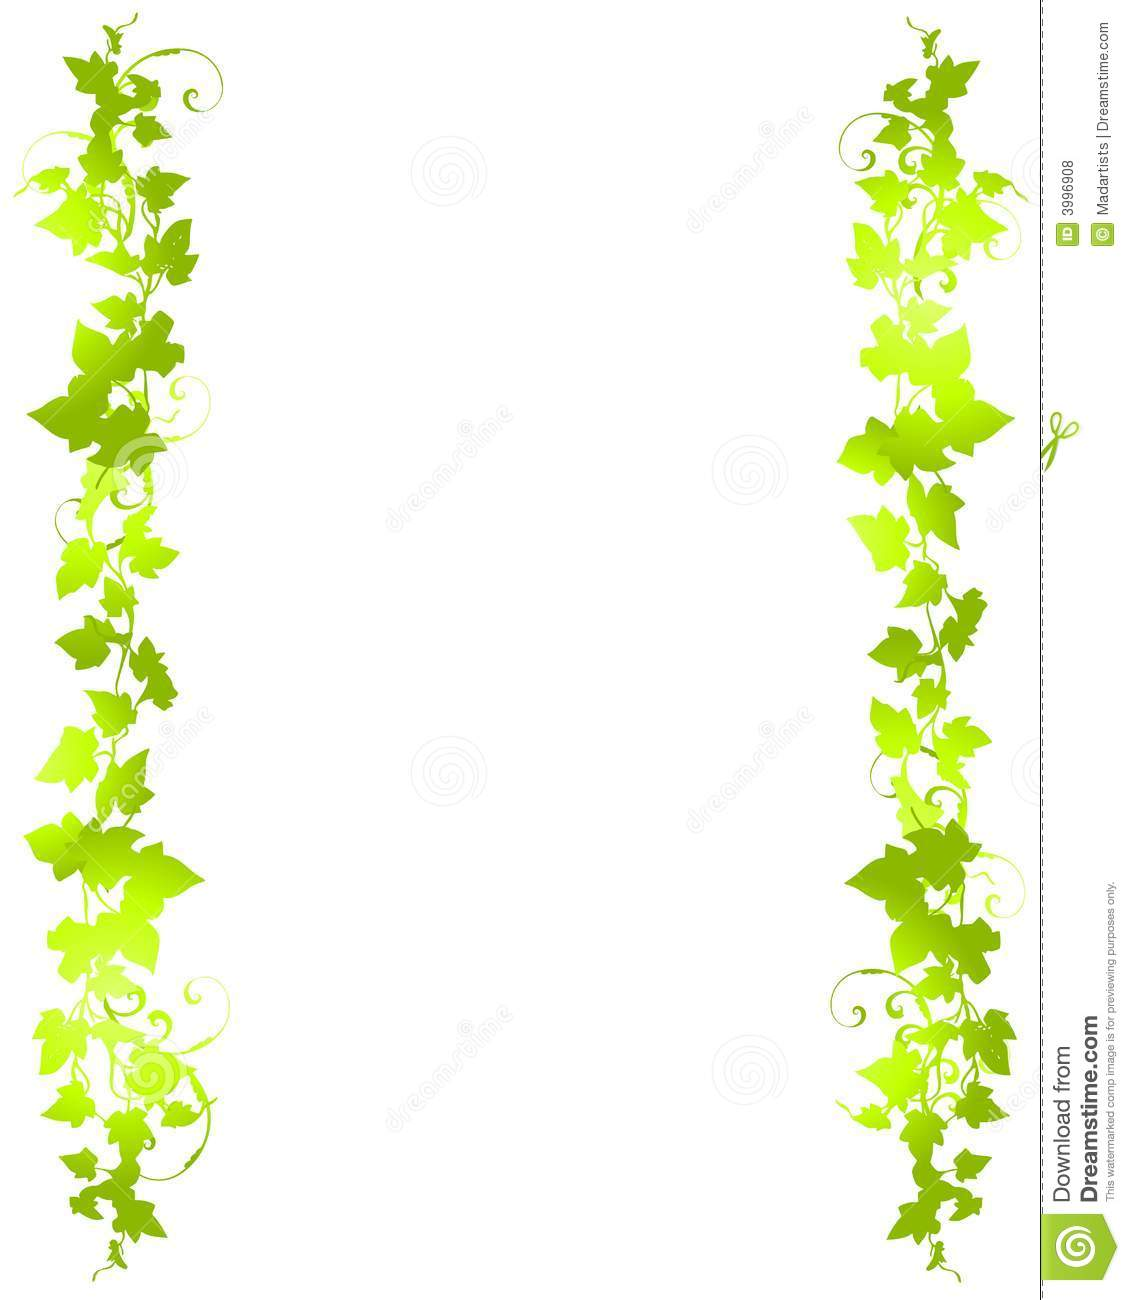 Ivy clipart jungle leaves background Border Border Leaves Clipart Leaves